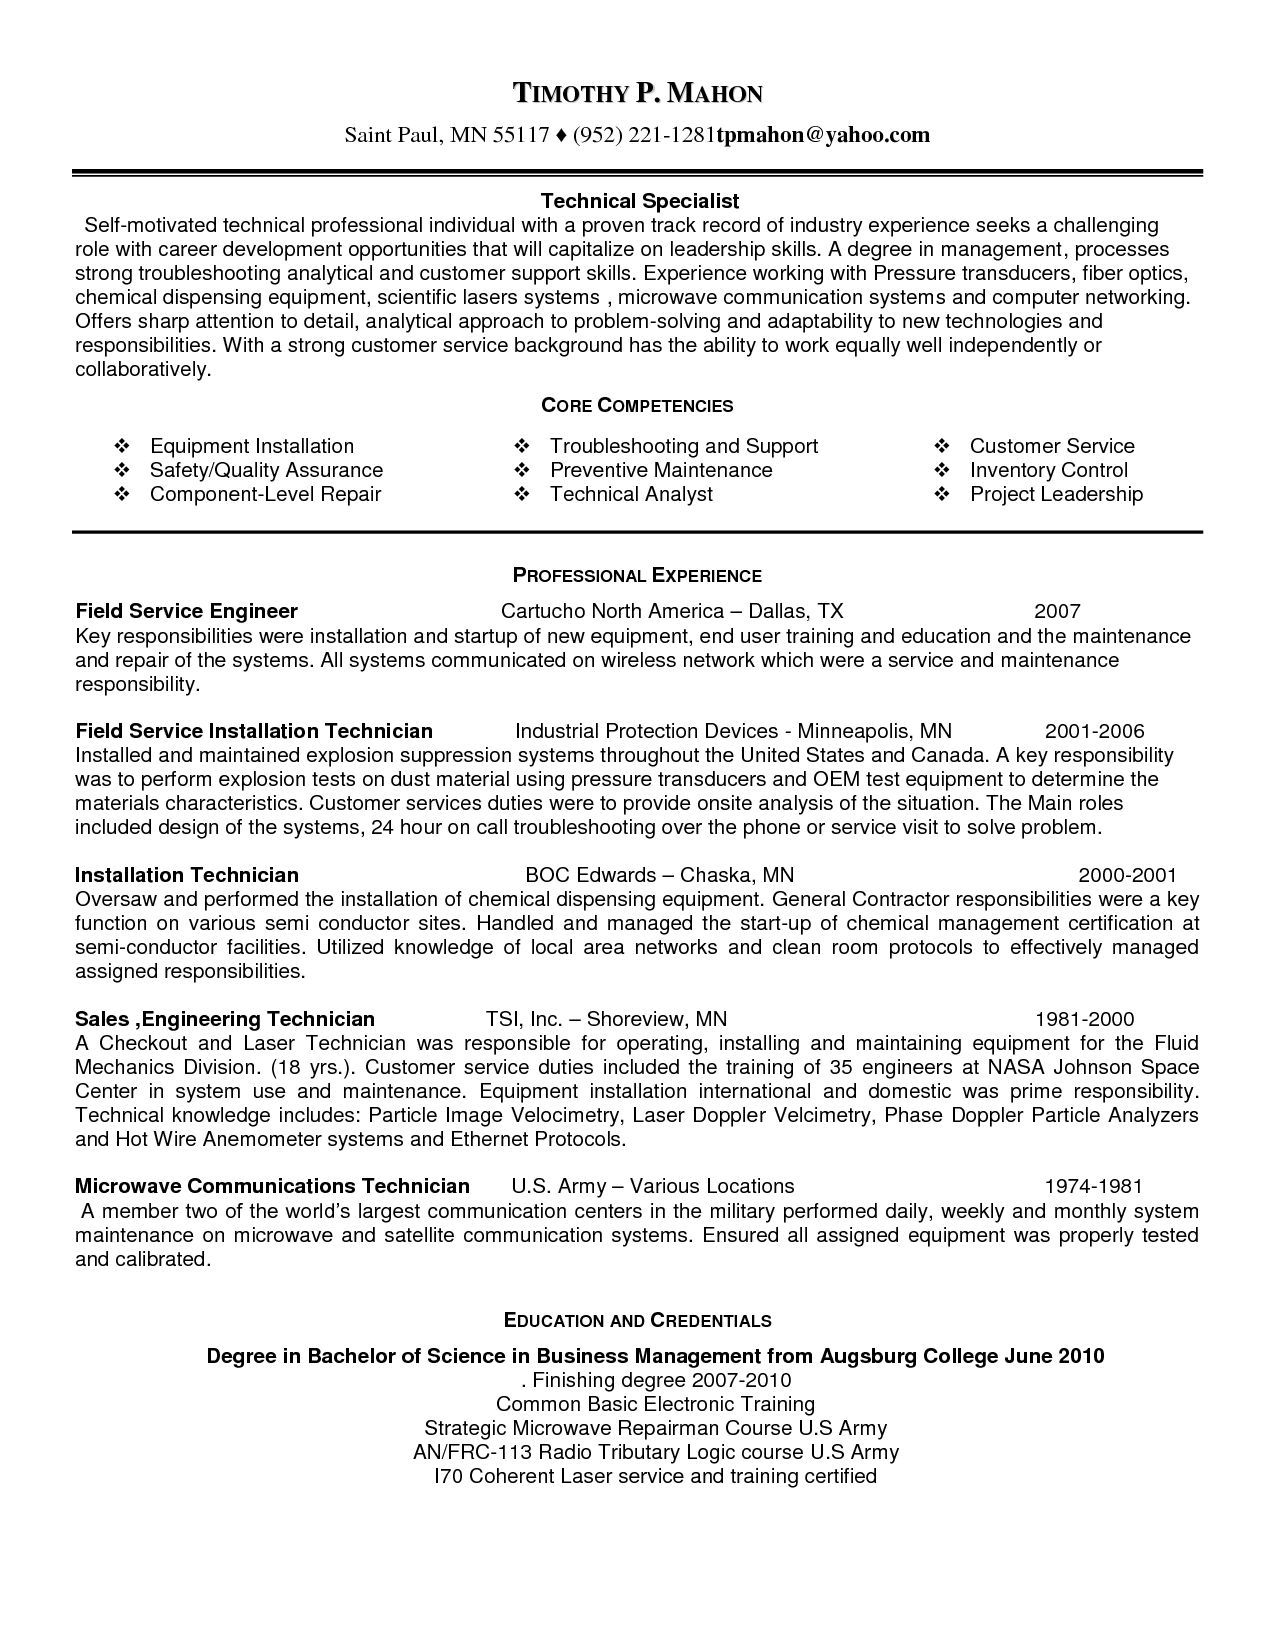 Auto Tech Resume Amazing Sle Resume For Auto Mechanic 28 Images Car Mechanics Resume Sales .